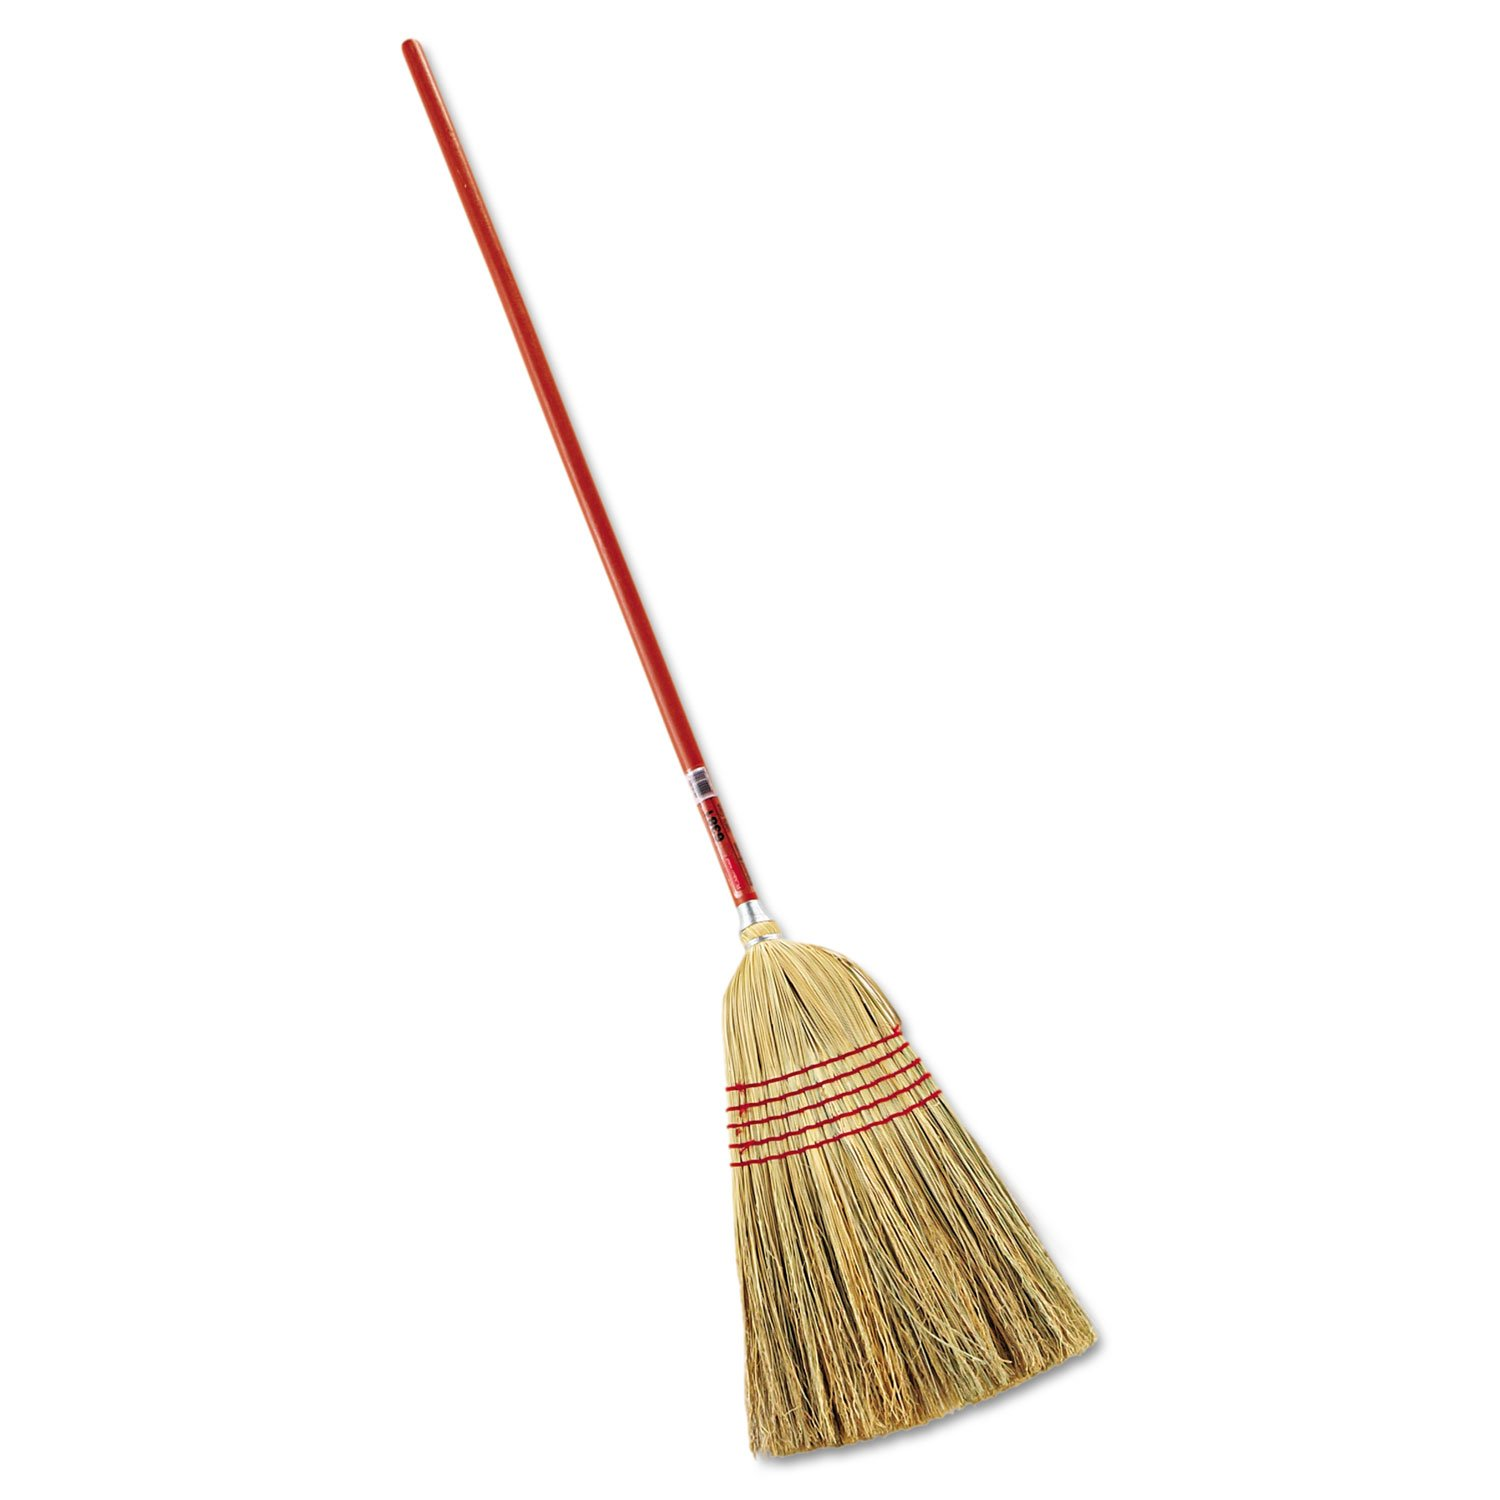 Rubbermaid FG638100 Red 1-Inch Handle Standard Corn Broom